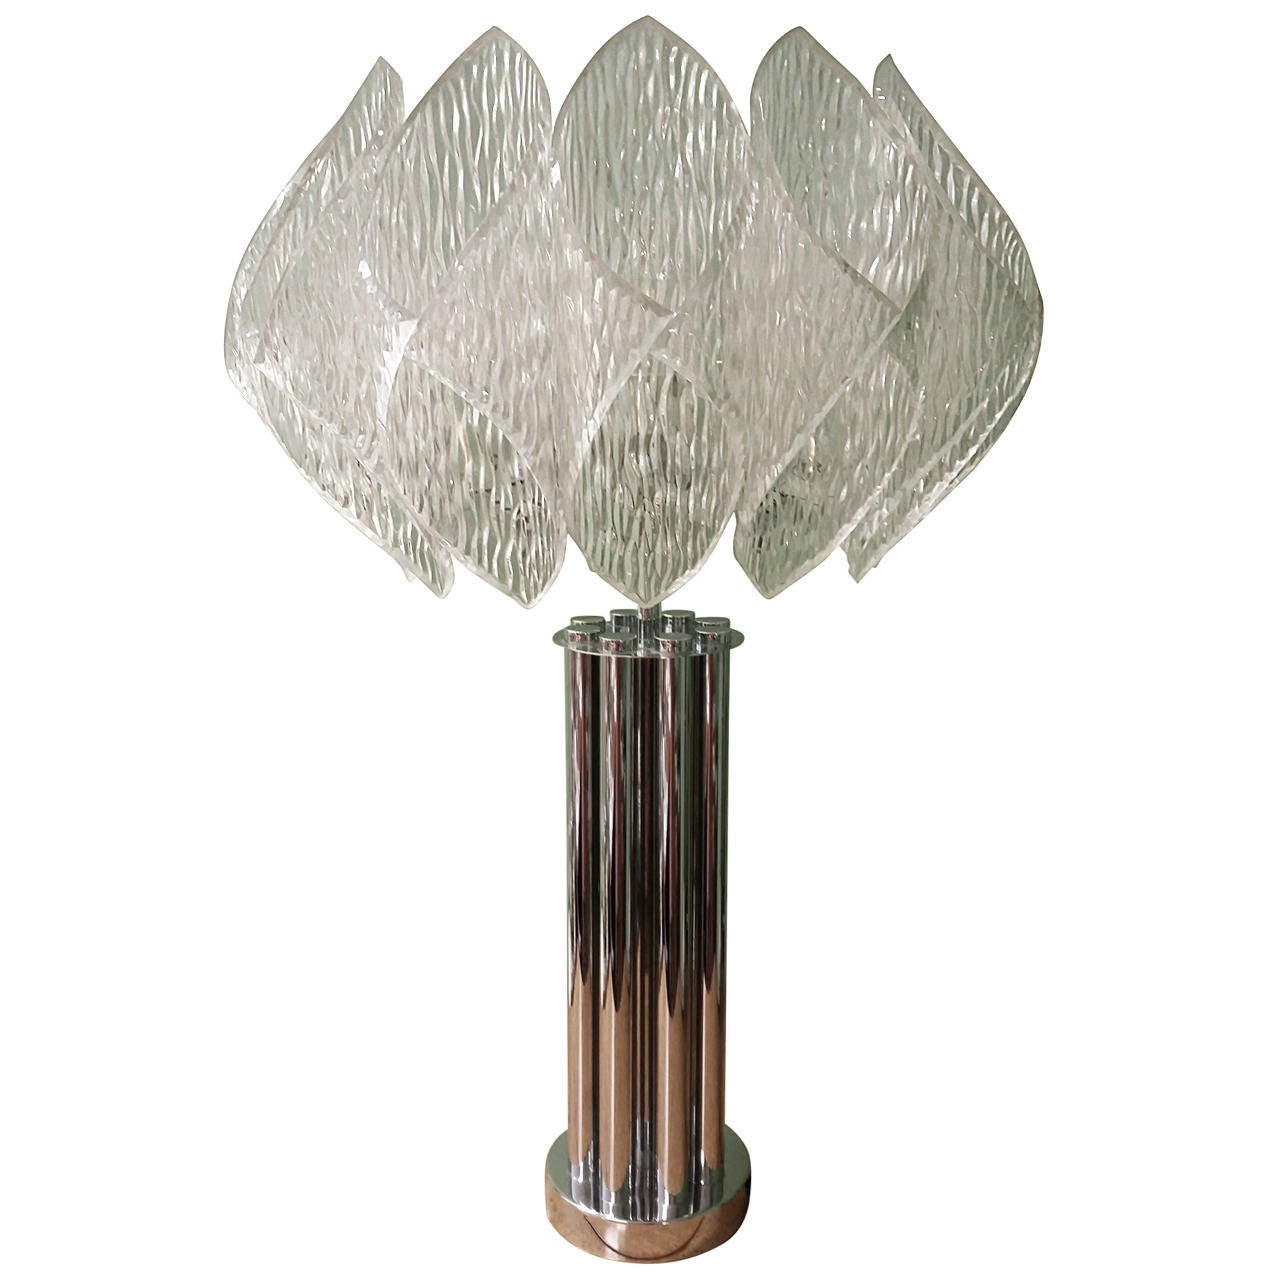 Mid-20th Century Design Table Lamp